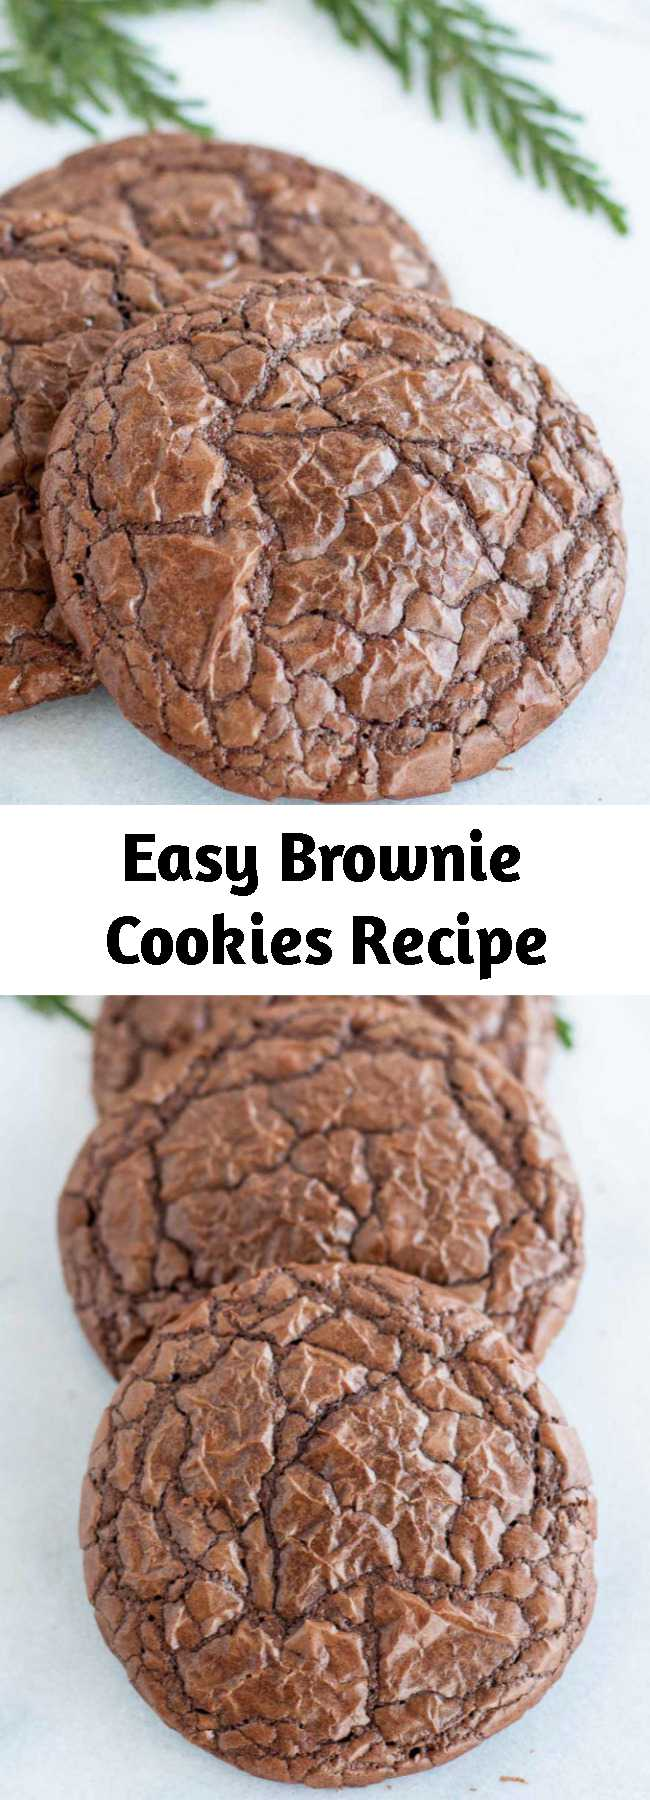 Easy Brownie Cookies Recipe - The best of both worlds! These brownie cookies are your favourite chewy, chocolatey brownies in cookie form!